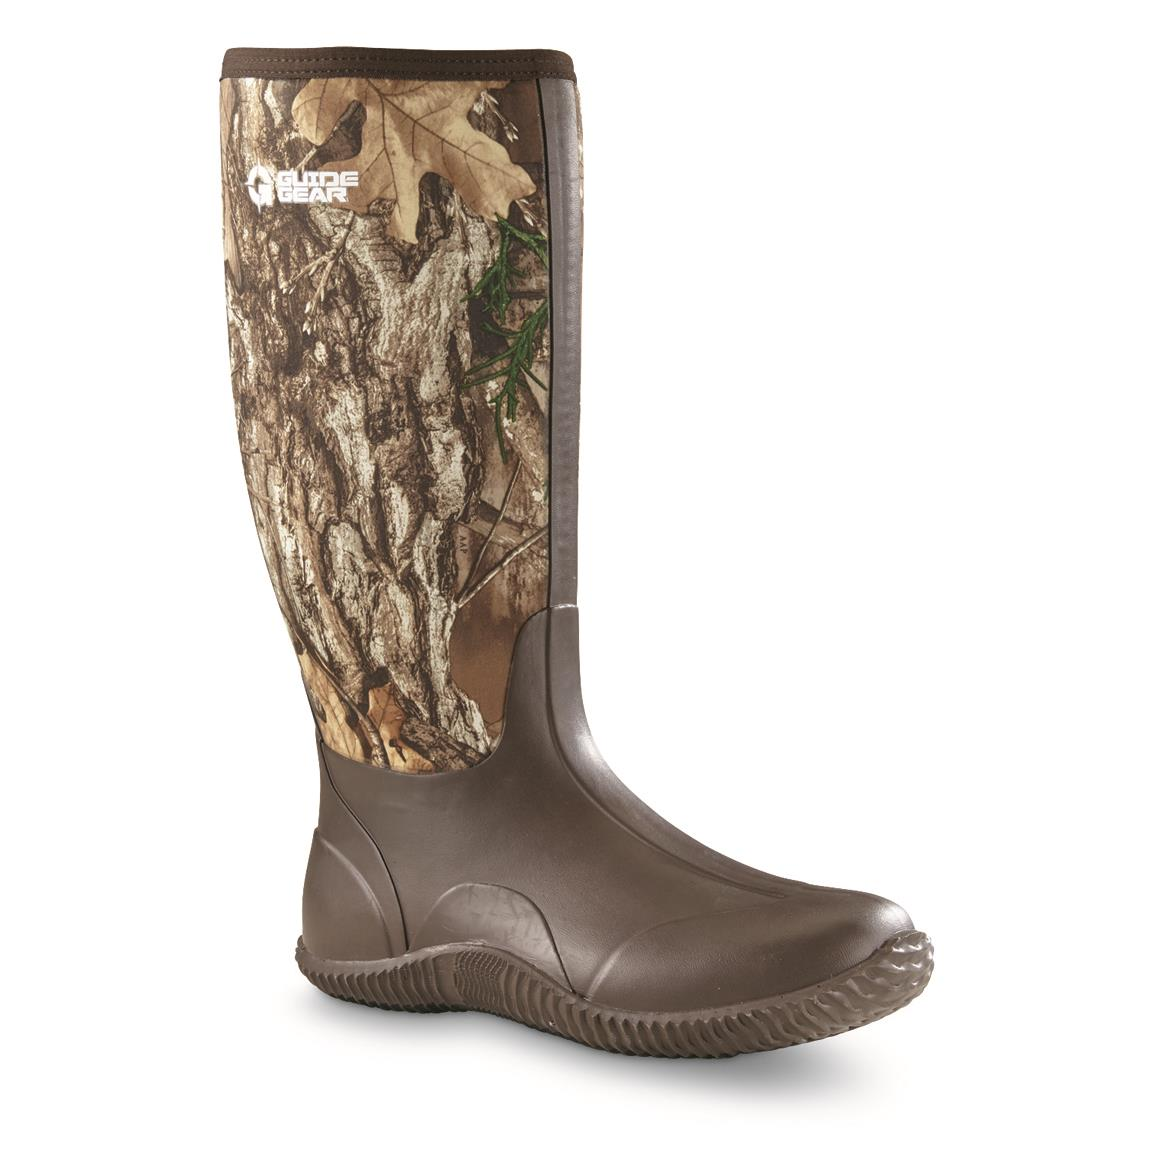 Guide Gear Men's High Camo Bogger Rubber Boots, Realtree Edge, Realtree EDGE™